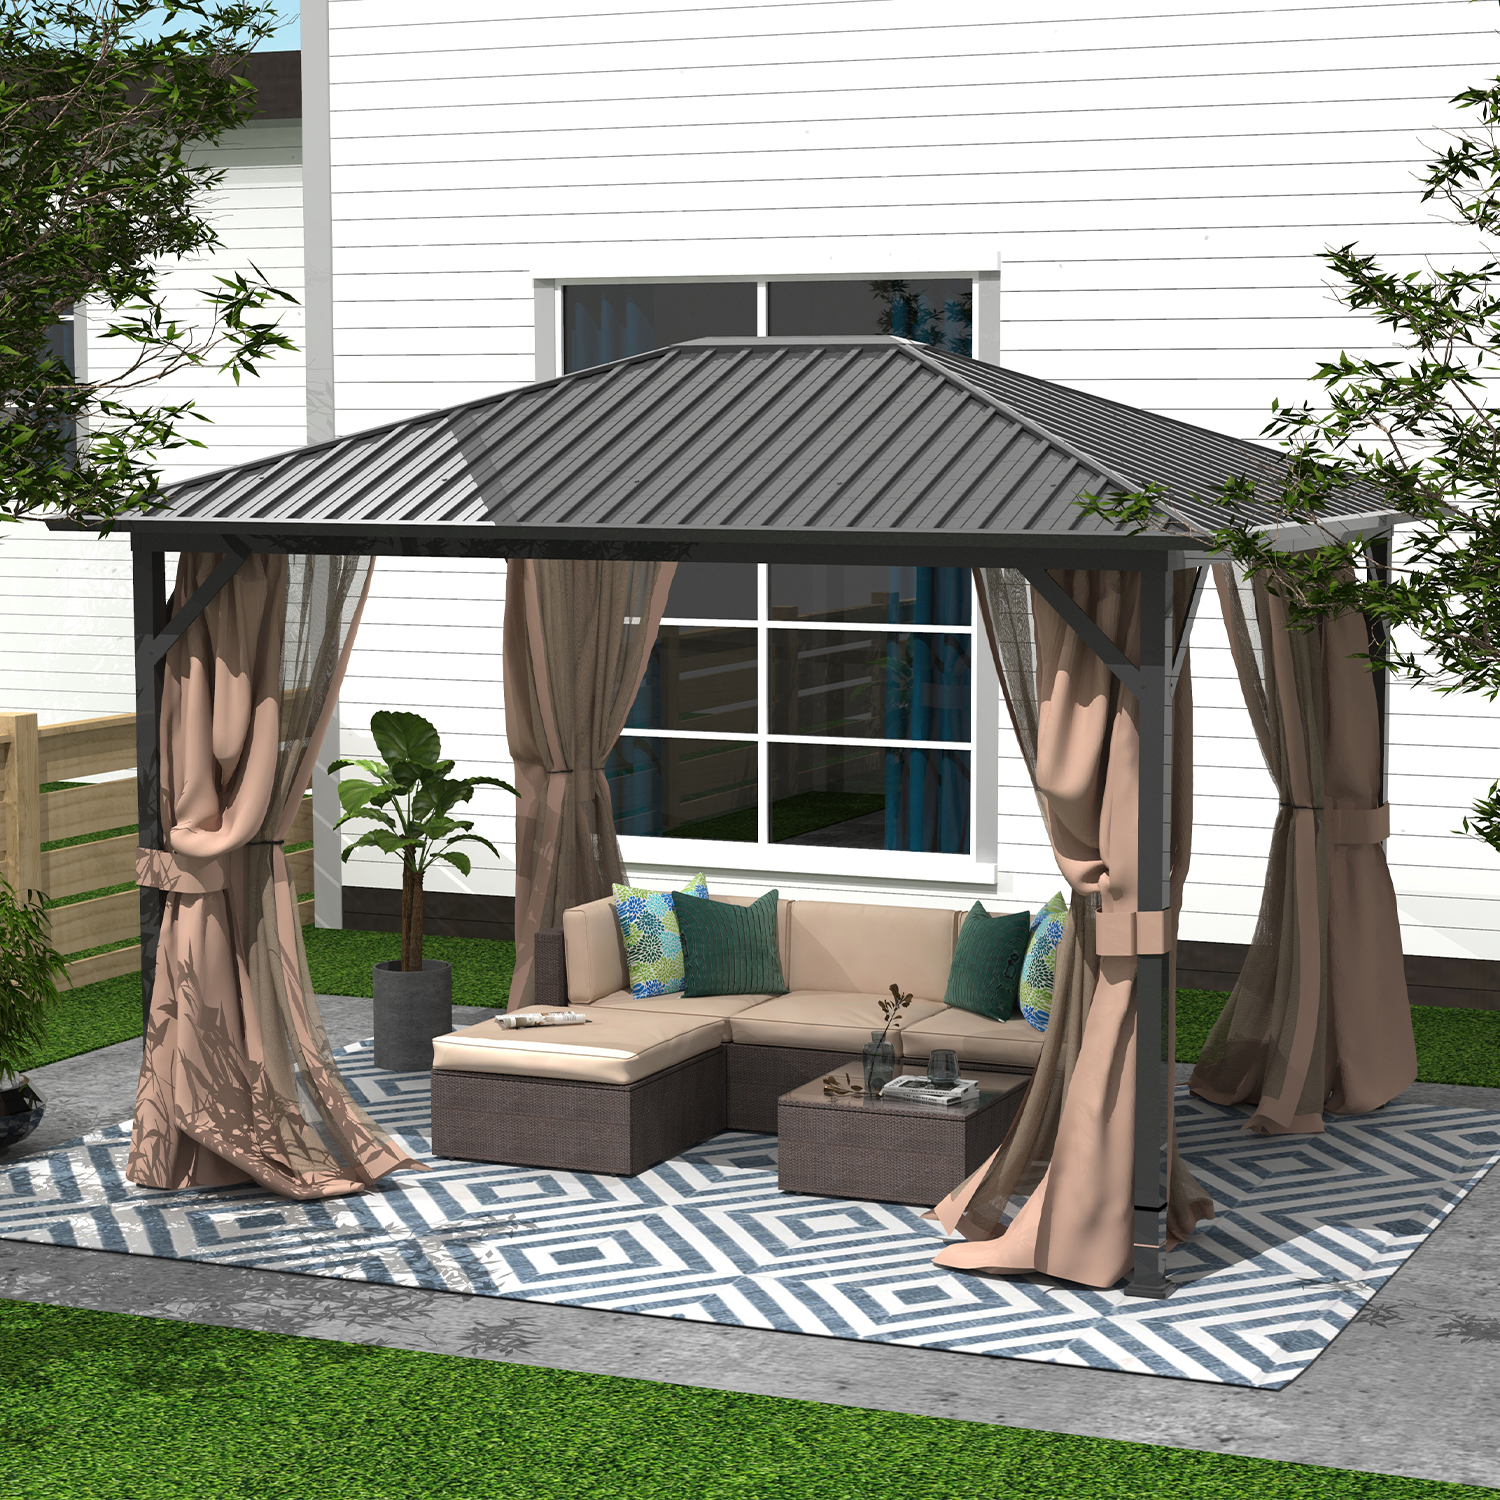 finefind 10 x 12 hardtop gazebo outdoor metal canopy gazebo with netting and curtains for patios all season